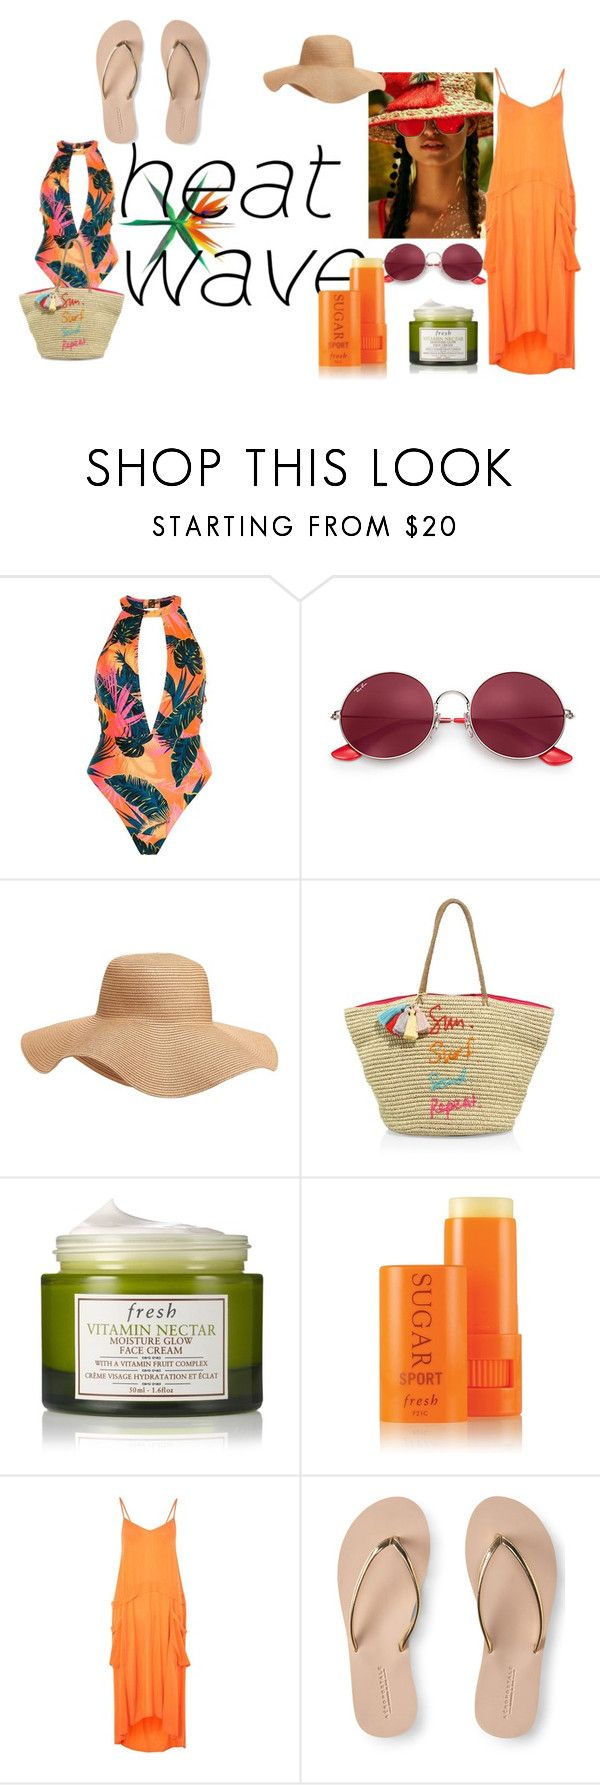 """#heatwave"" by hajer-bh ❤ liked on Polyvore featuring River Island, Ray-Ban, Old Navy, Rebecca Minkoff, Fresh, Topshop and Aéropostale"